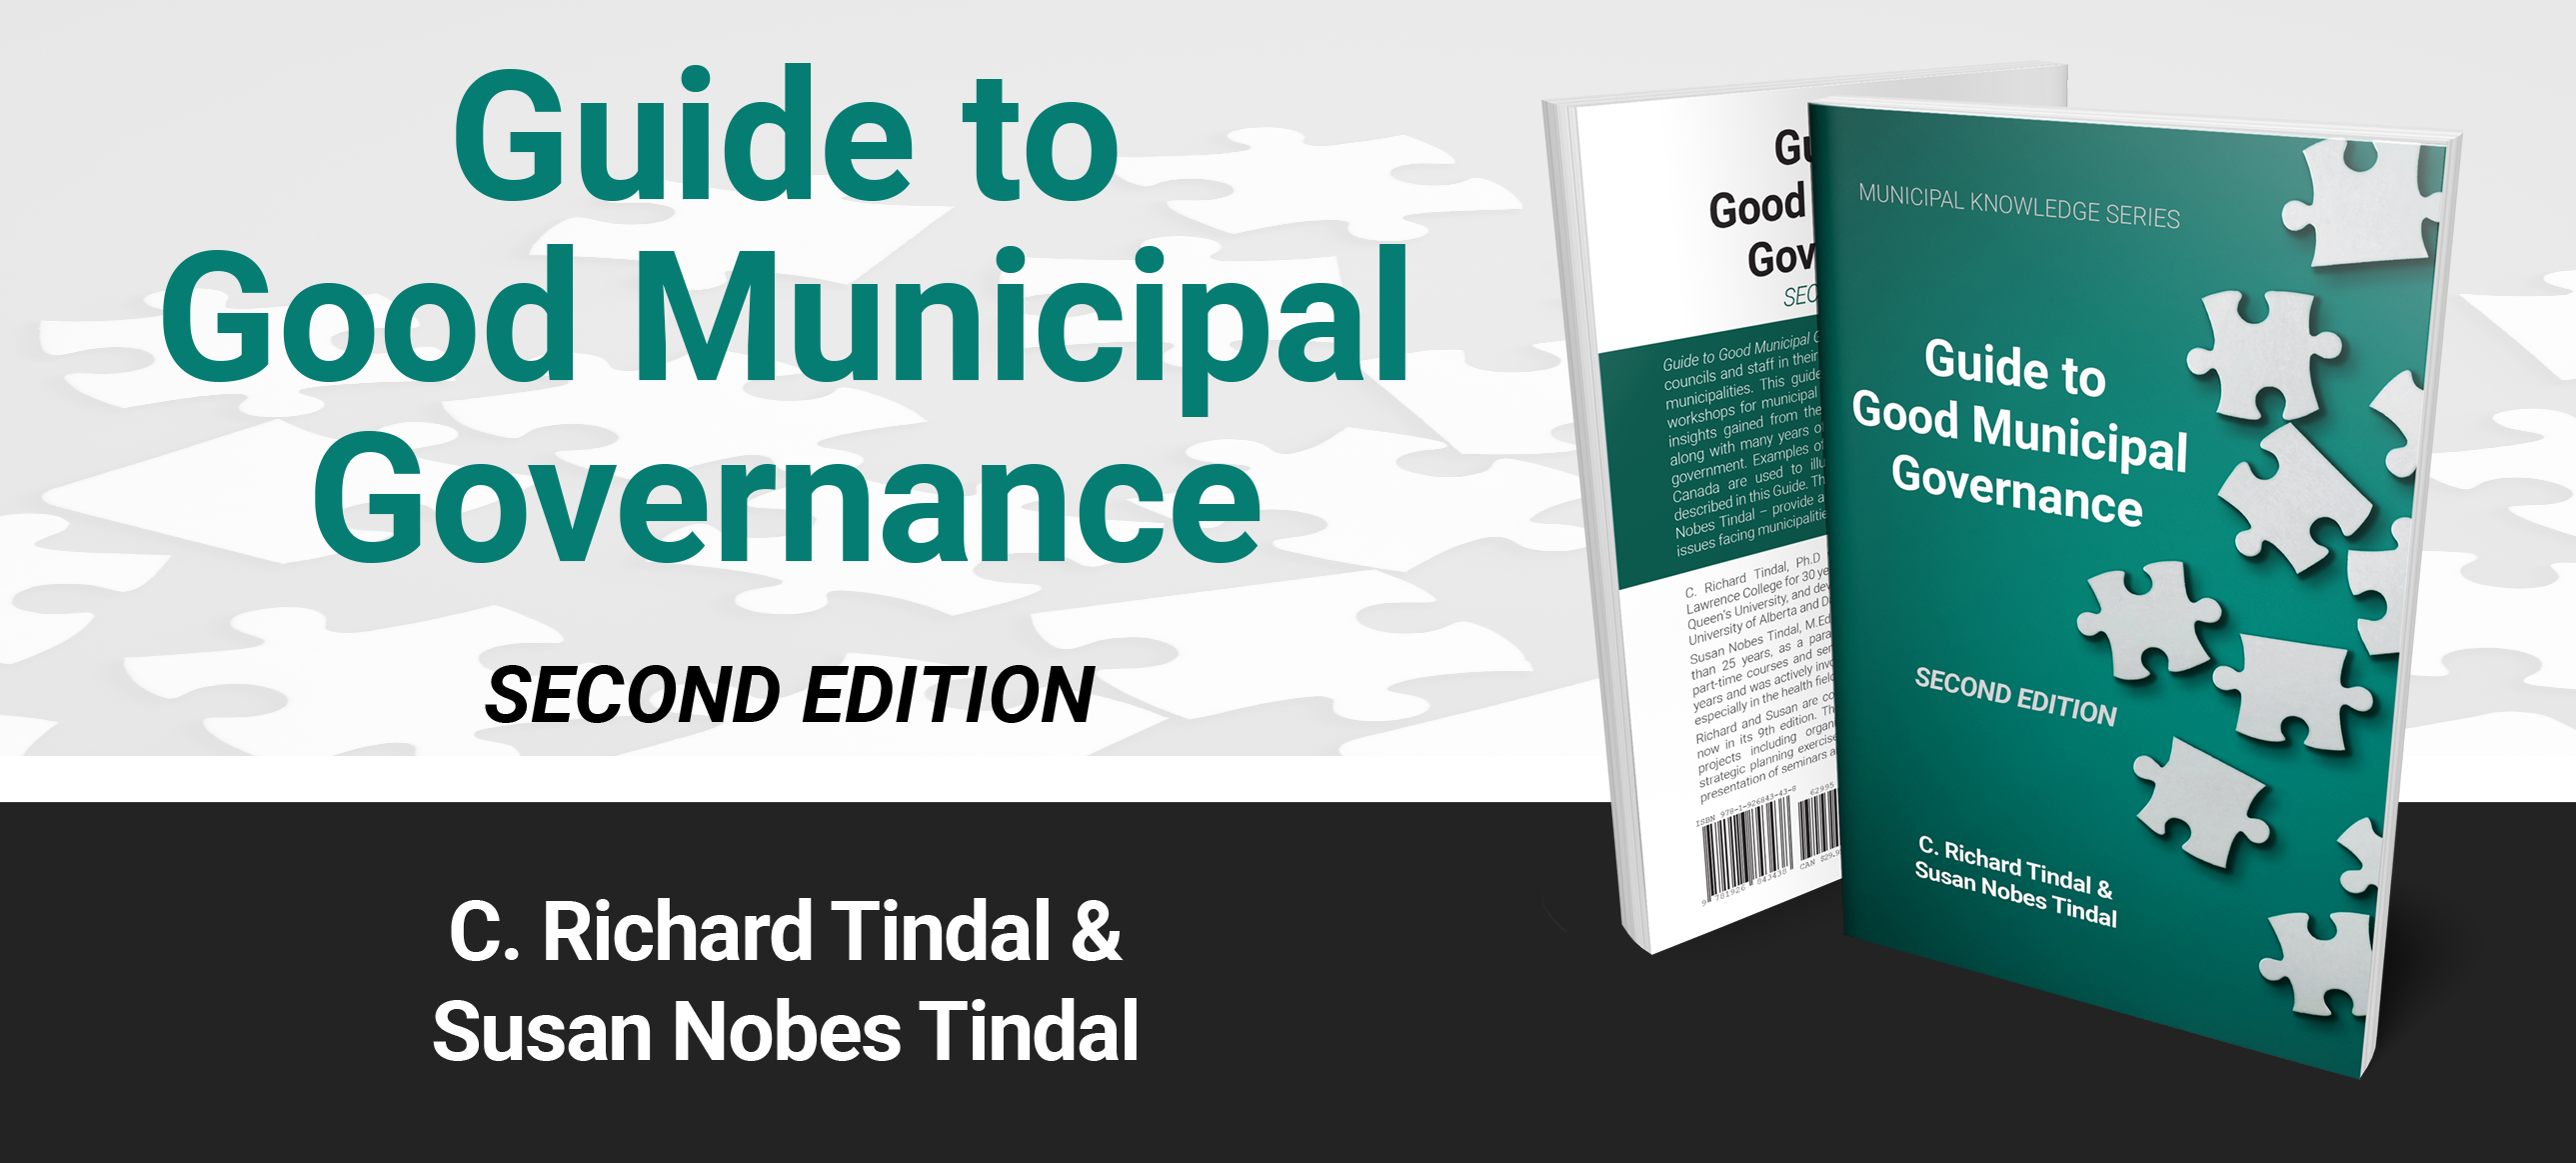 Guide to Good Municipal Governance SE Web banner